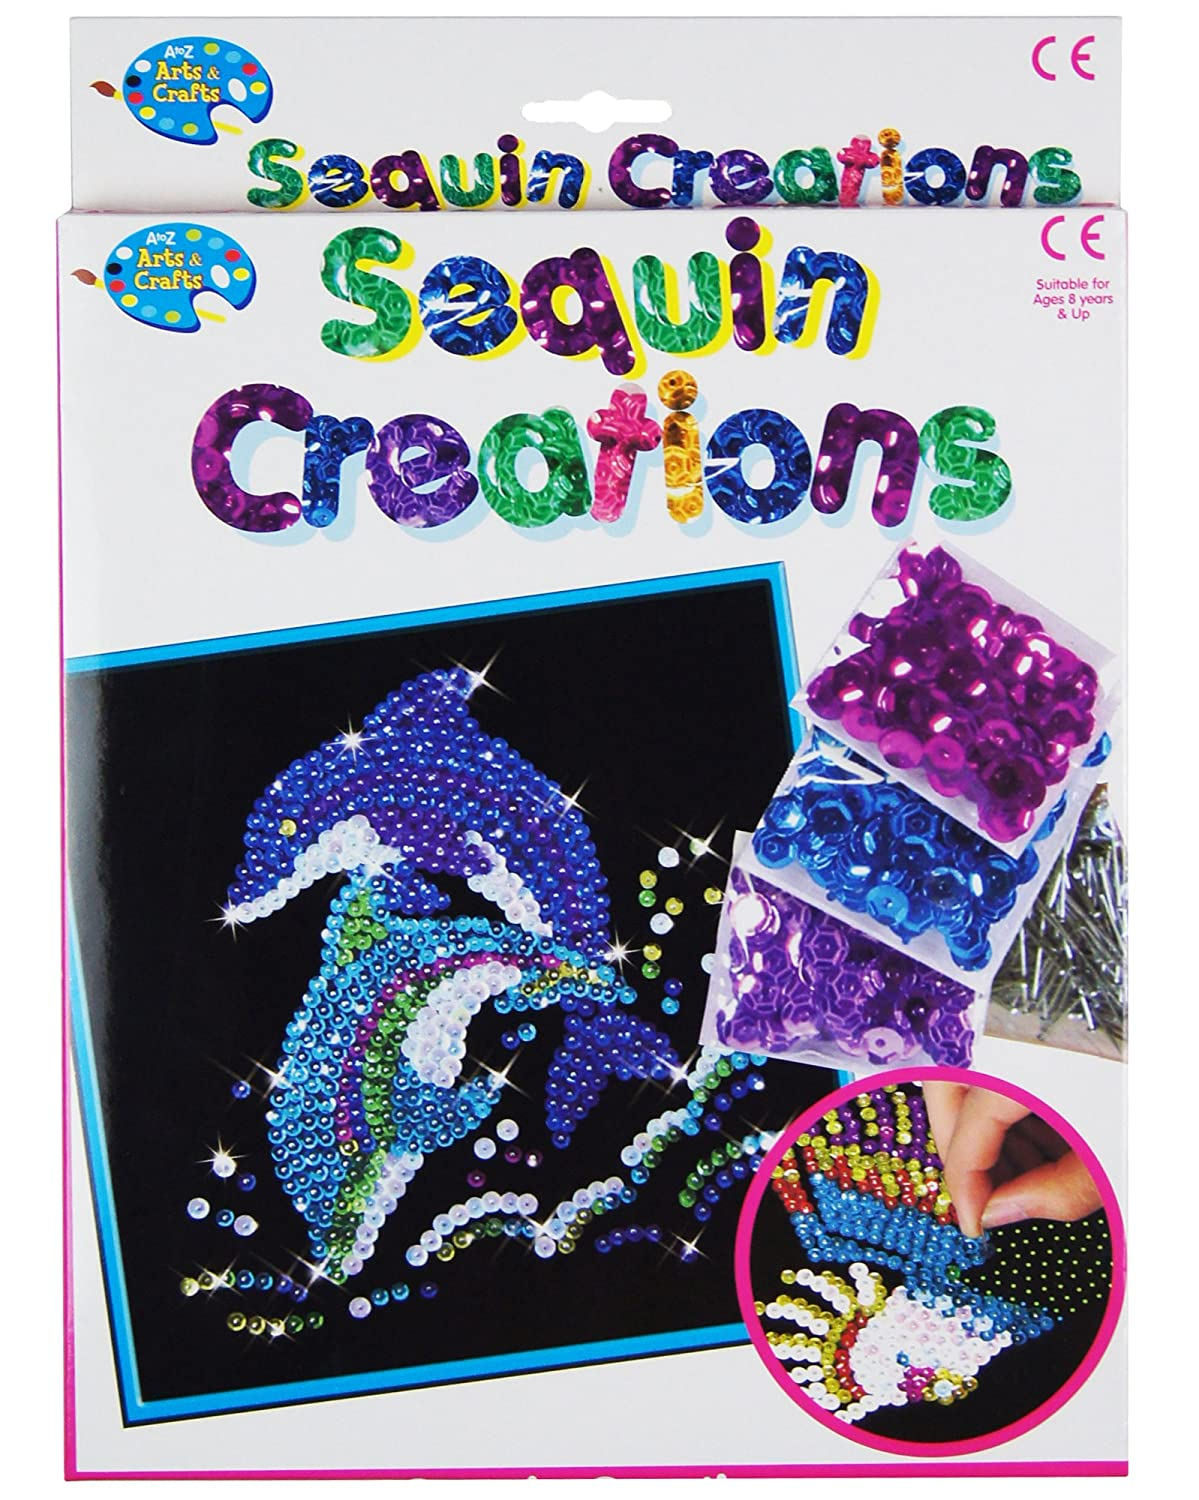 make your own sequin creations childrens pin art craft set